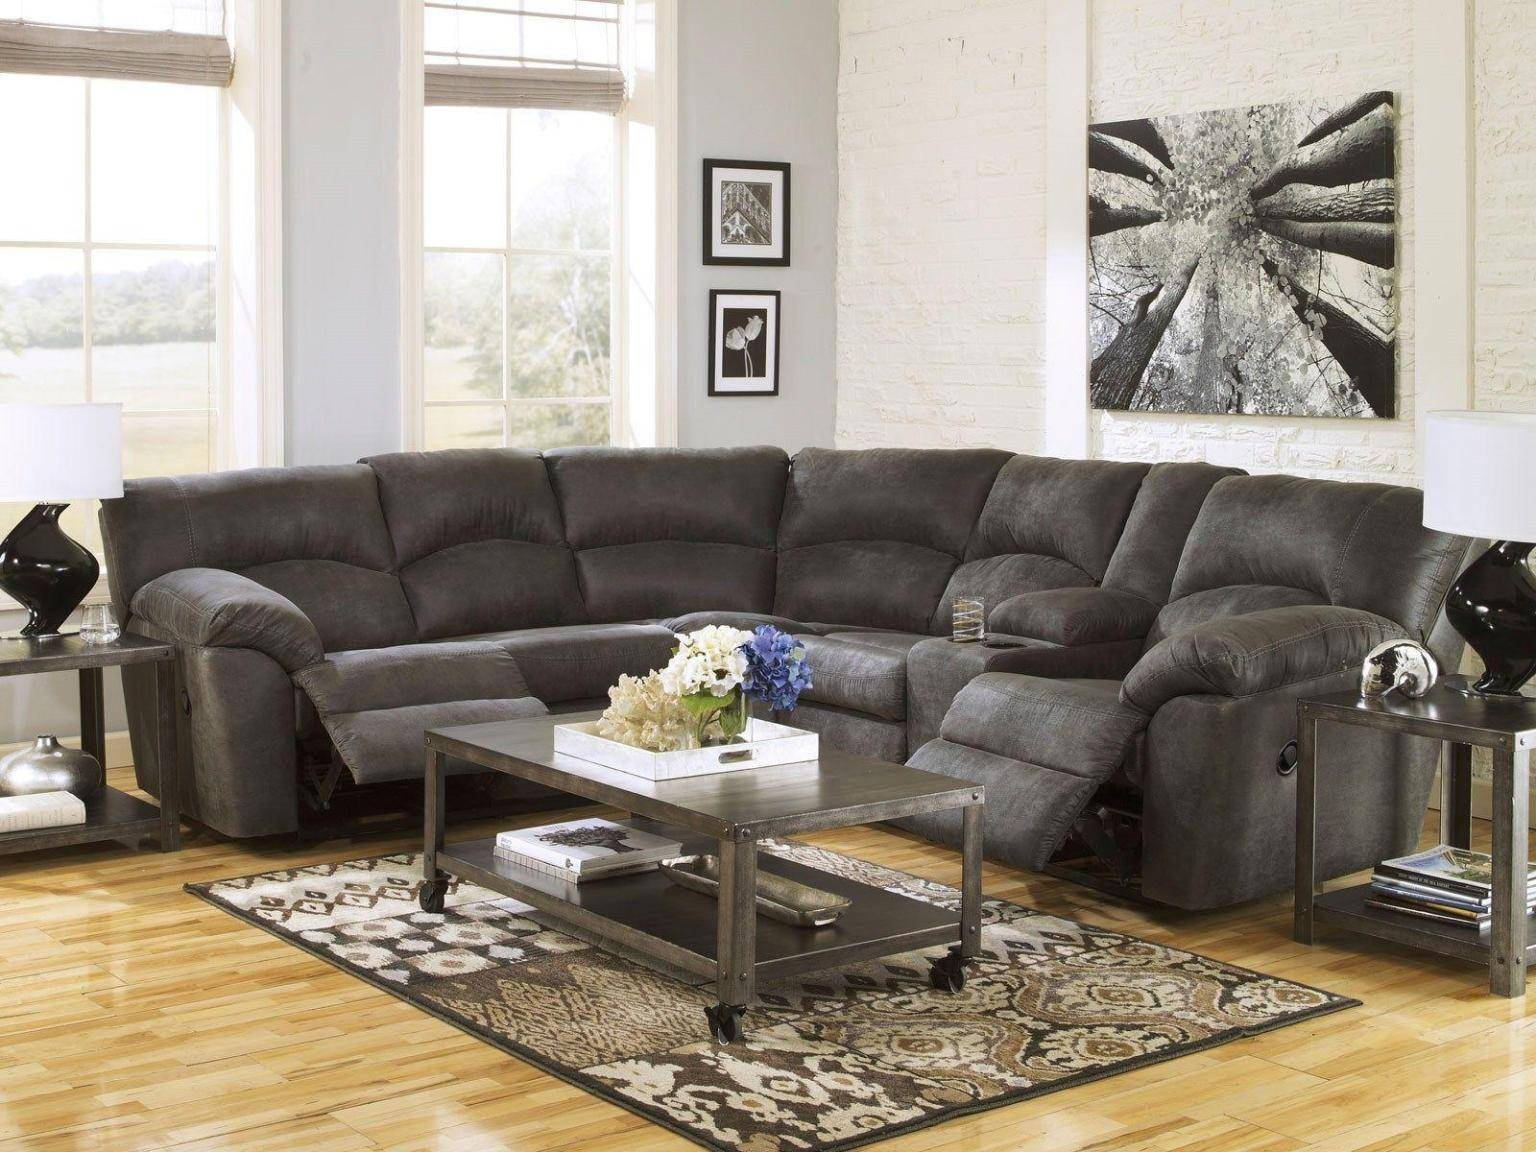 Best Design Sectional Sofas With Recliners with regard to Sectional Sofas For Small Spaces With Recliners (Image 1 of 30)